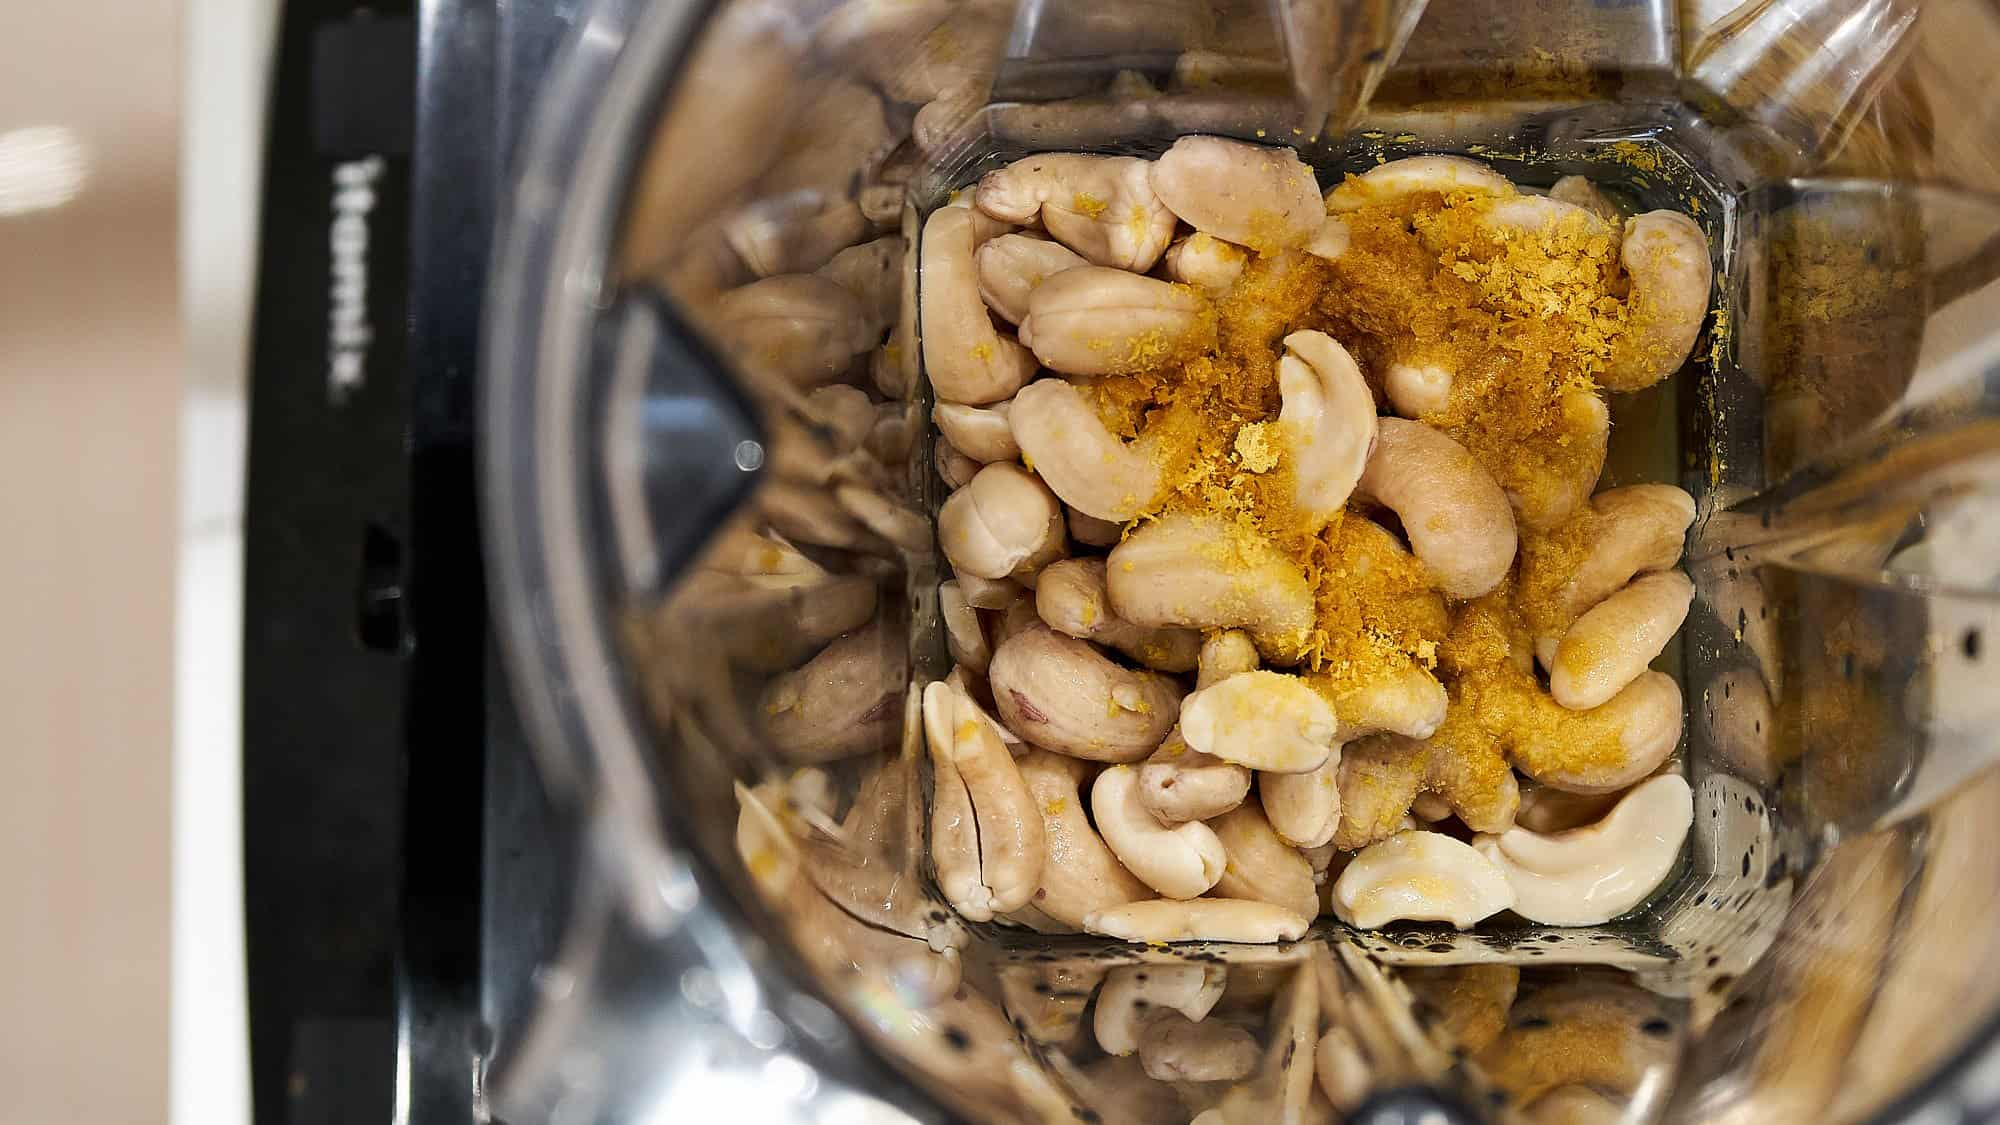 The boiled cashew nuts go into a blender with nutritional yeast, soy sauce, salt and lemon juice to make a creamy plant-based French onion dip.